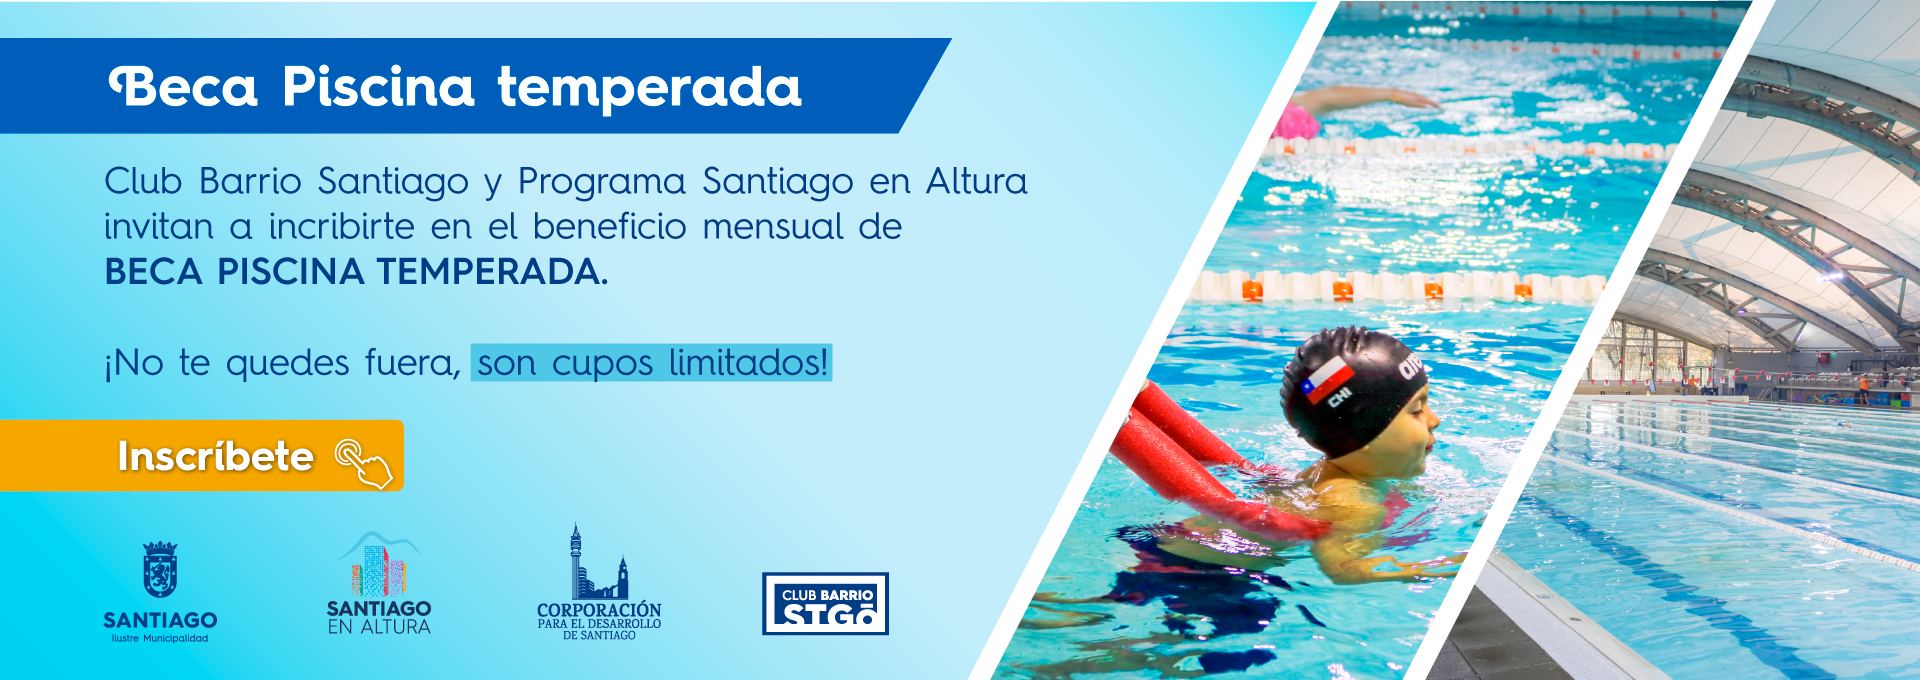 Becas de piscina temperada